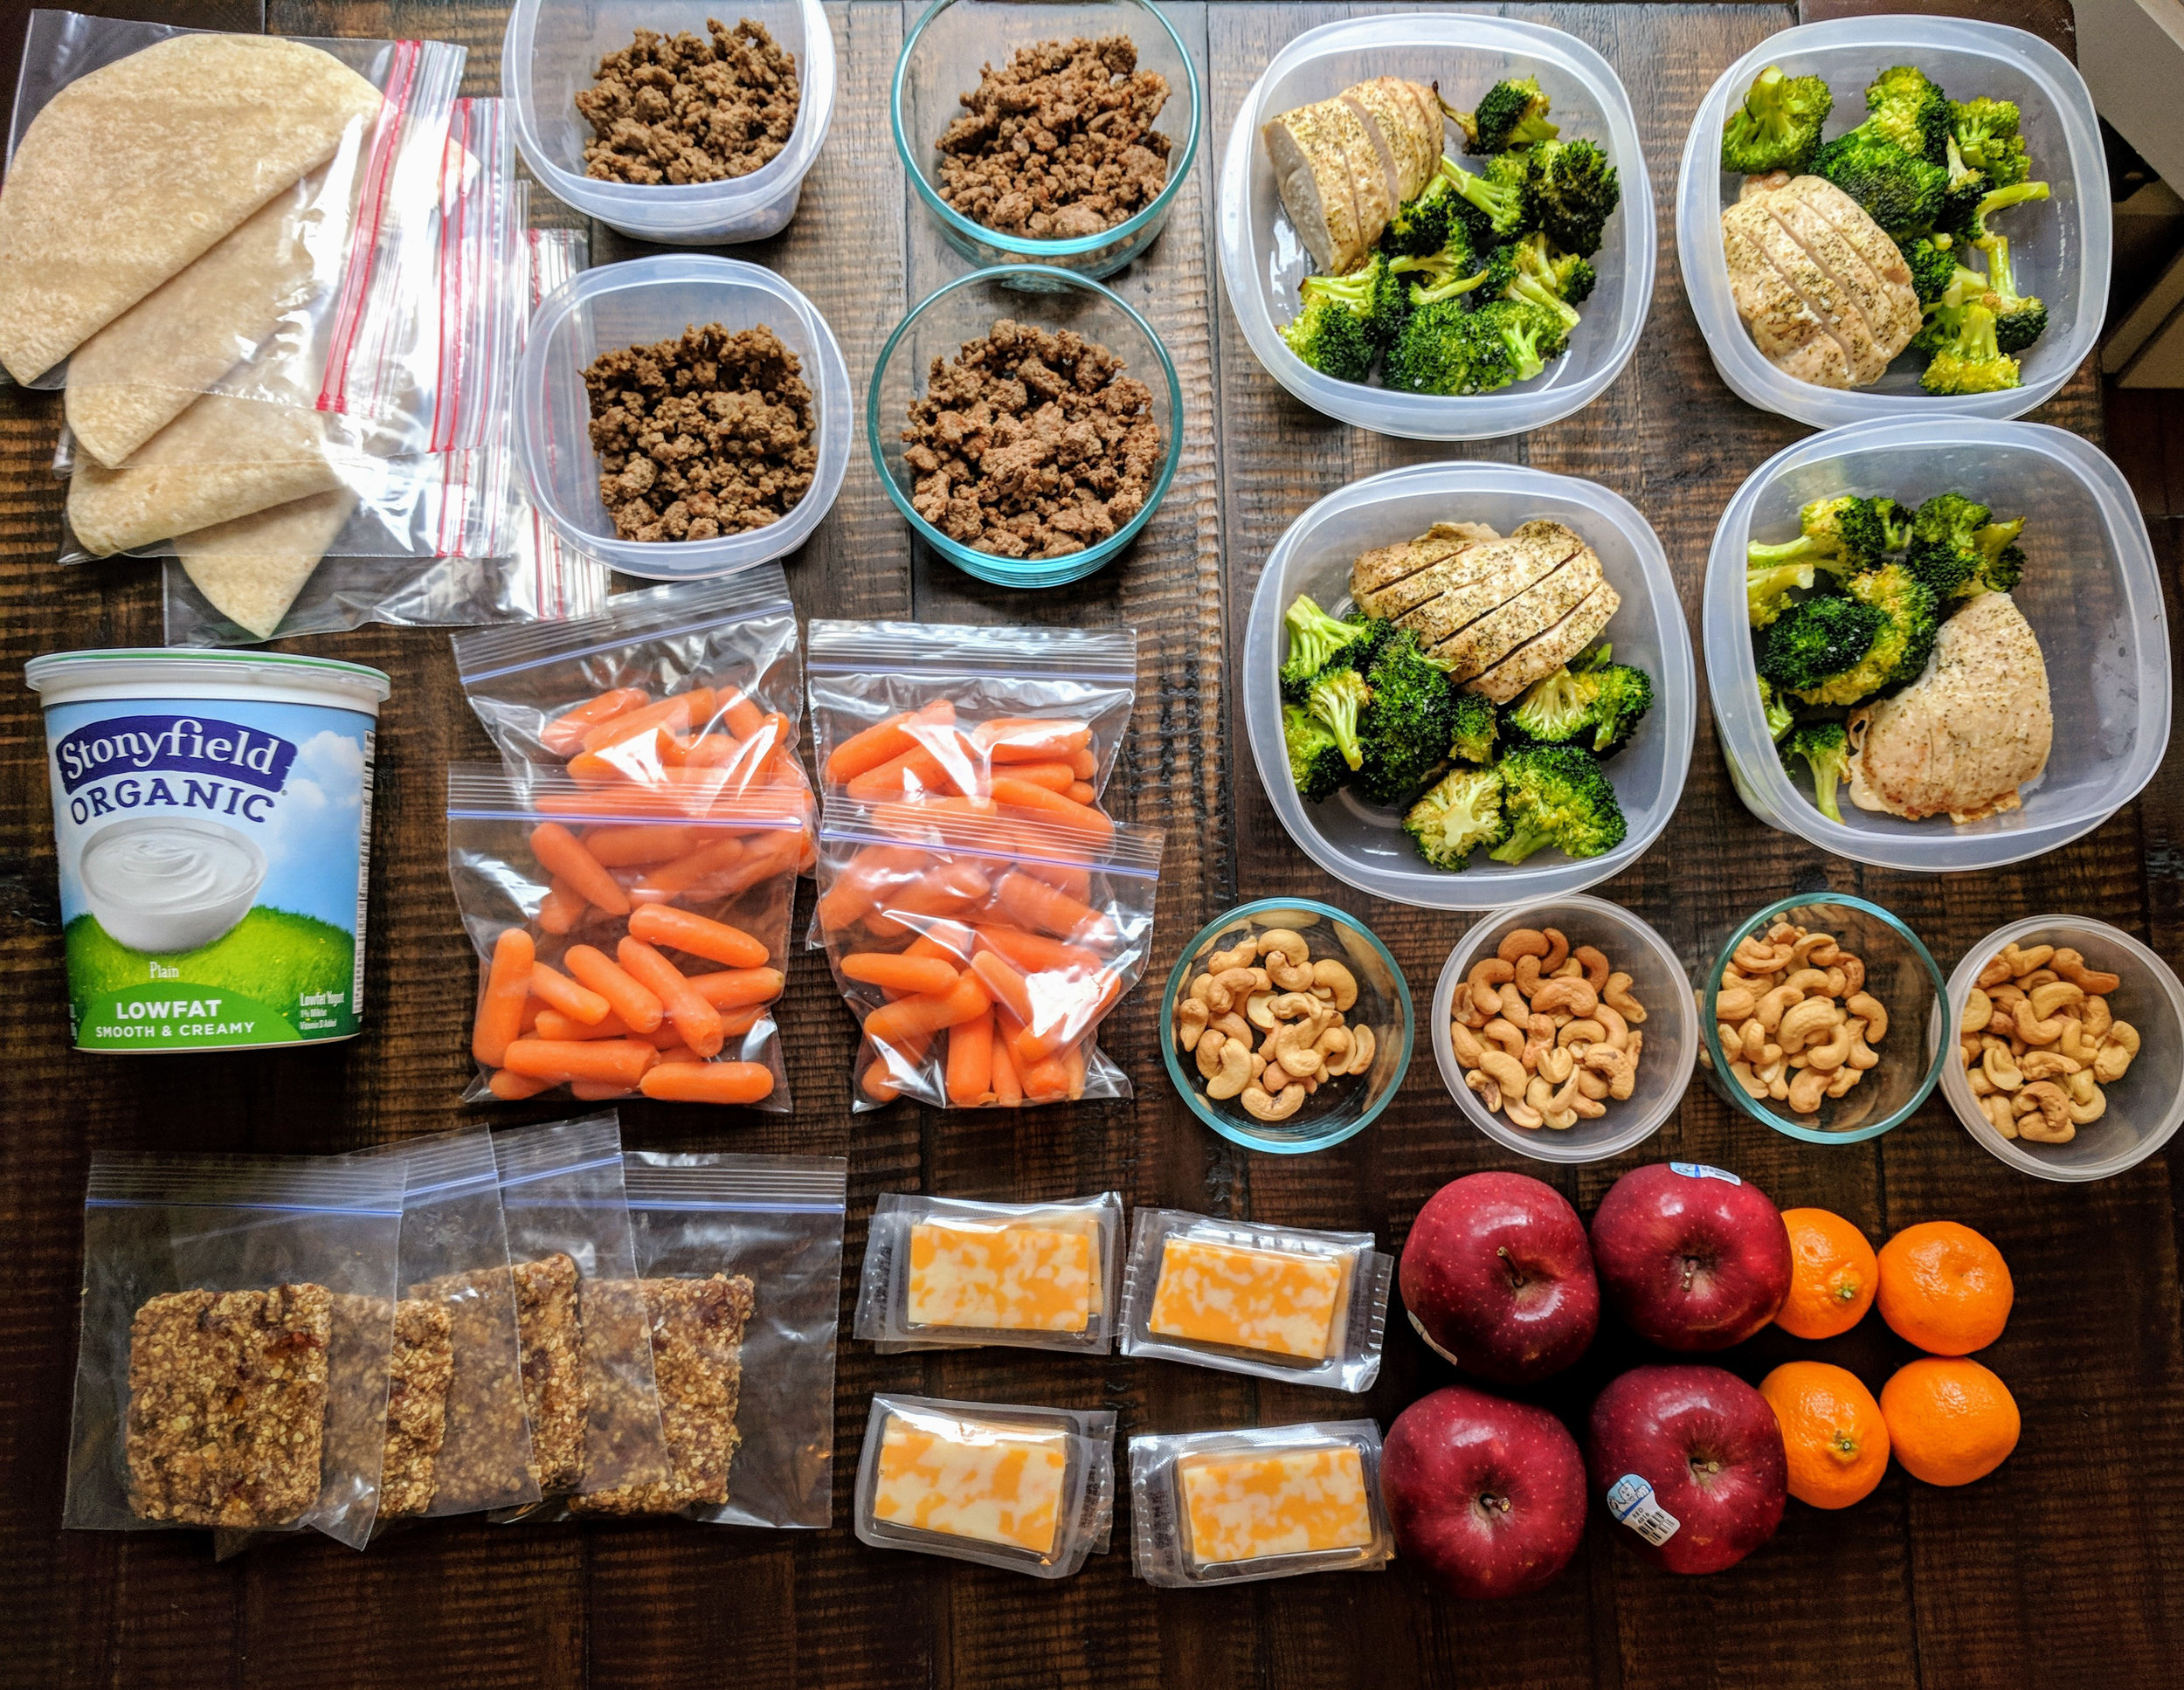 This meal prep prepares 12 meals (8 lunch or dinner and 4 breakfast) in under 2 hours. This meal prep allows you to save time and eat healthy no matter how busy your schedule is during the week.